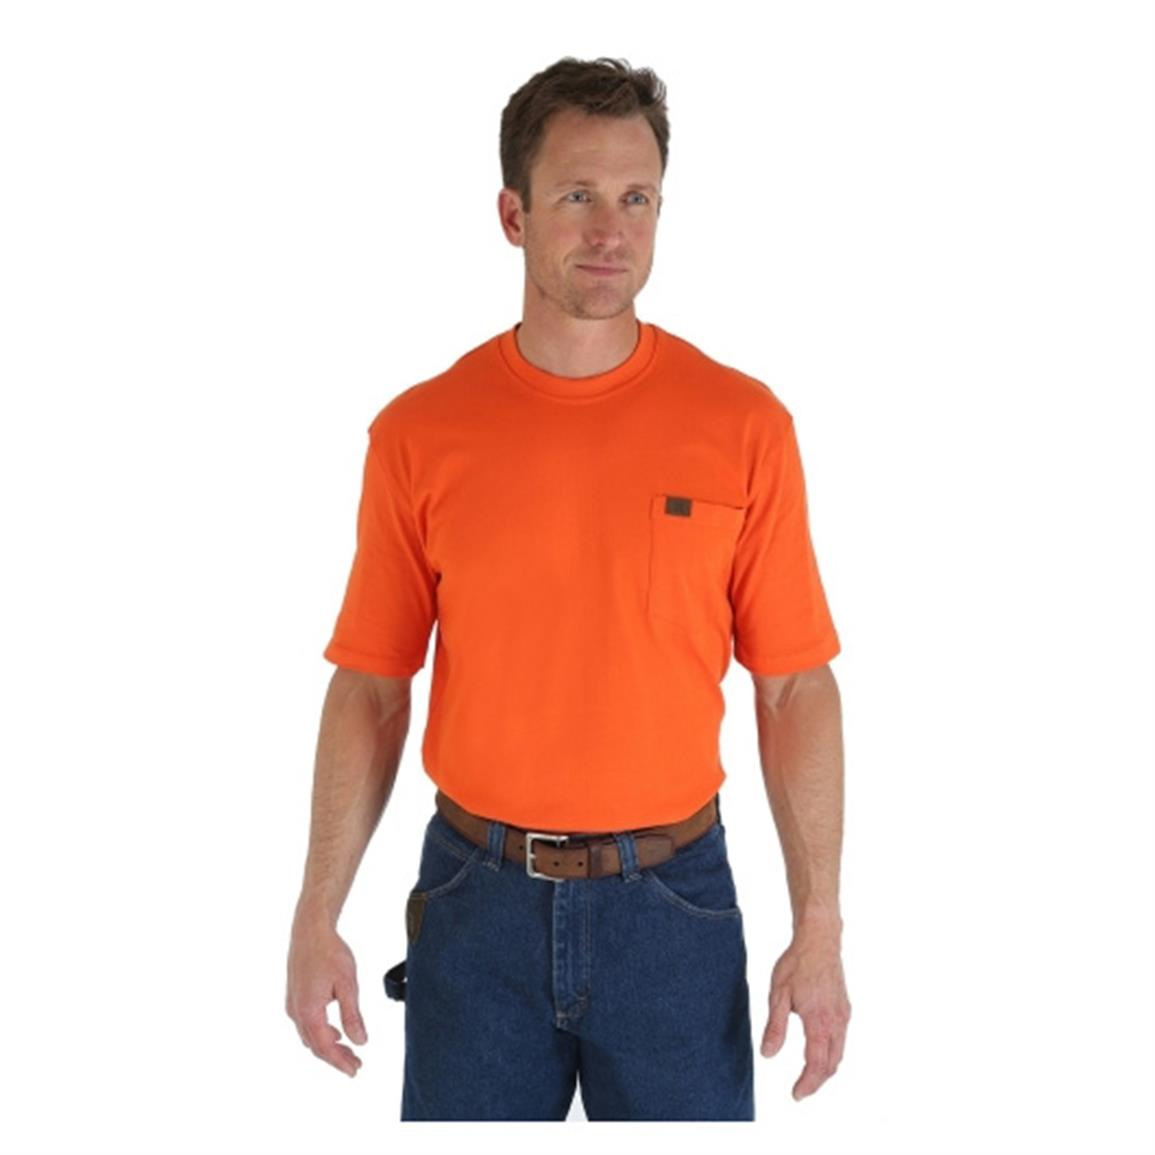 Wrangler RIGGS Workwear Men's Pocket Short Sleeve T-Shirt, Safety Orange